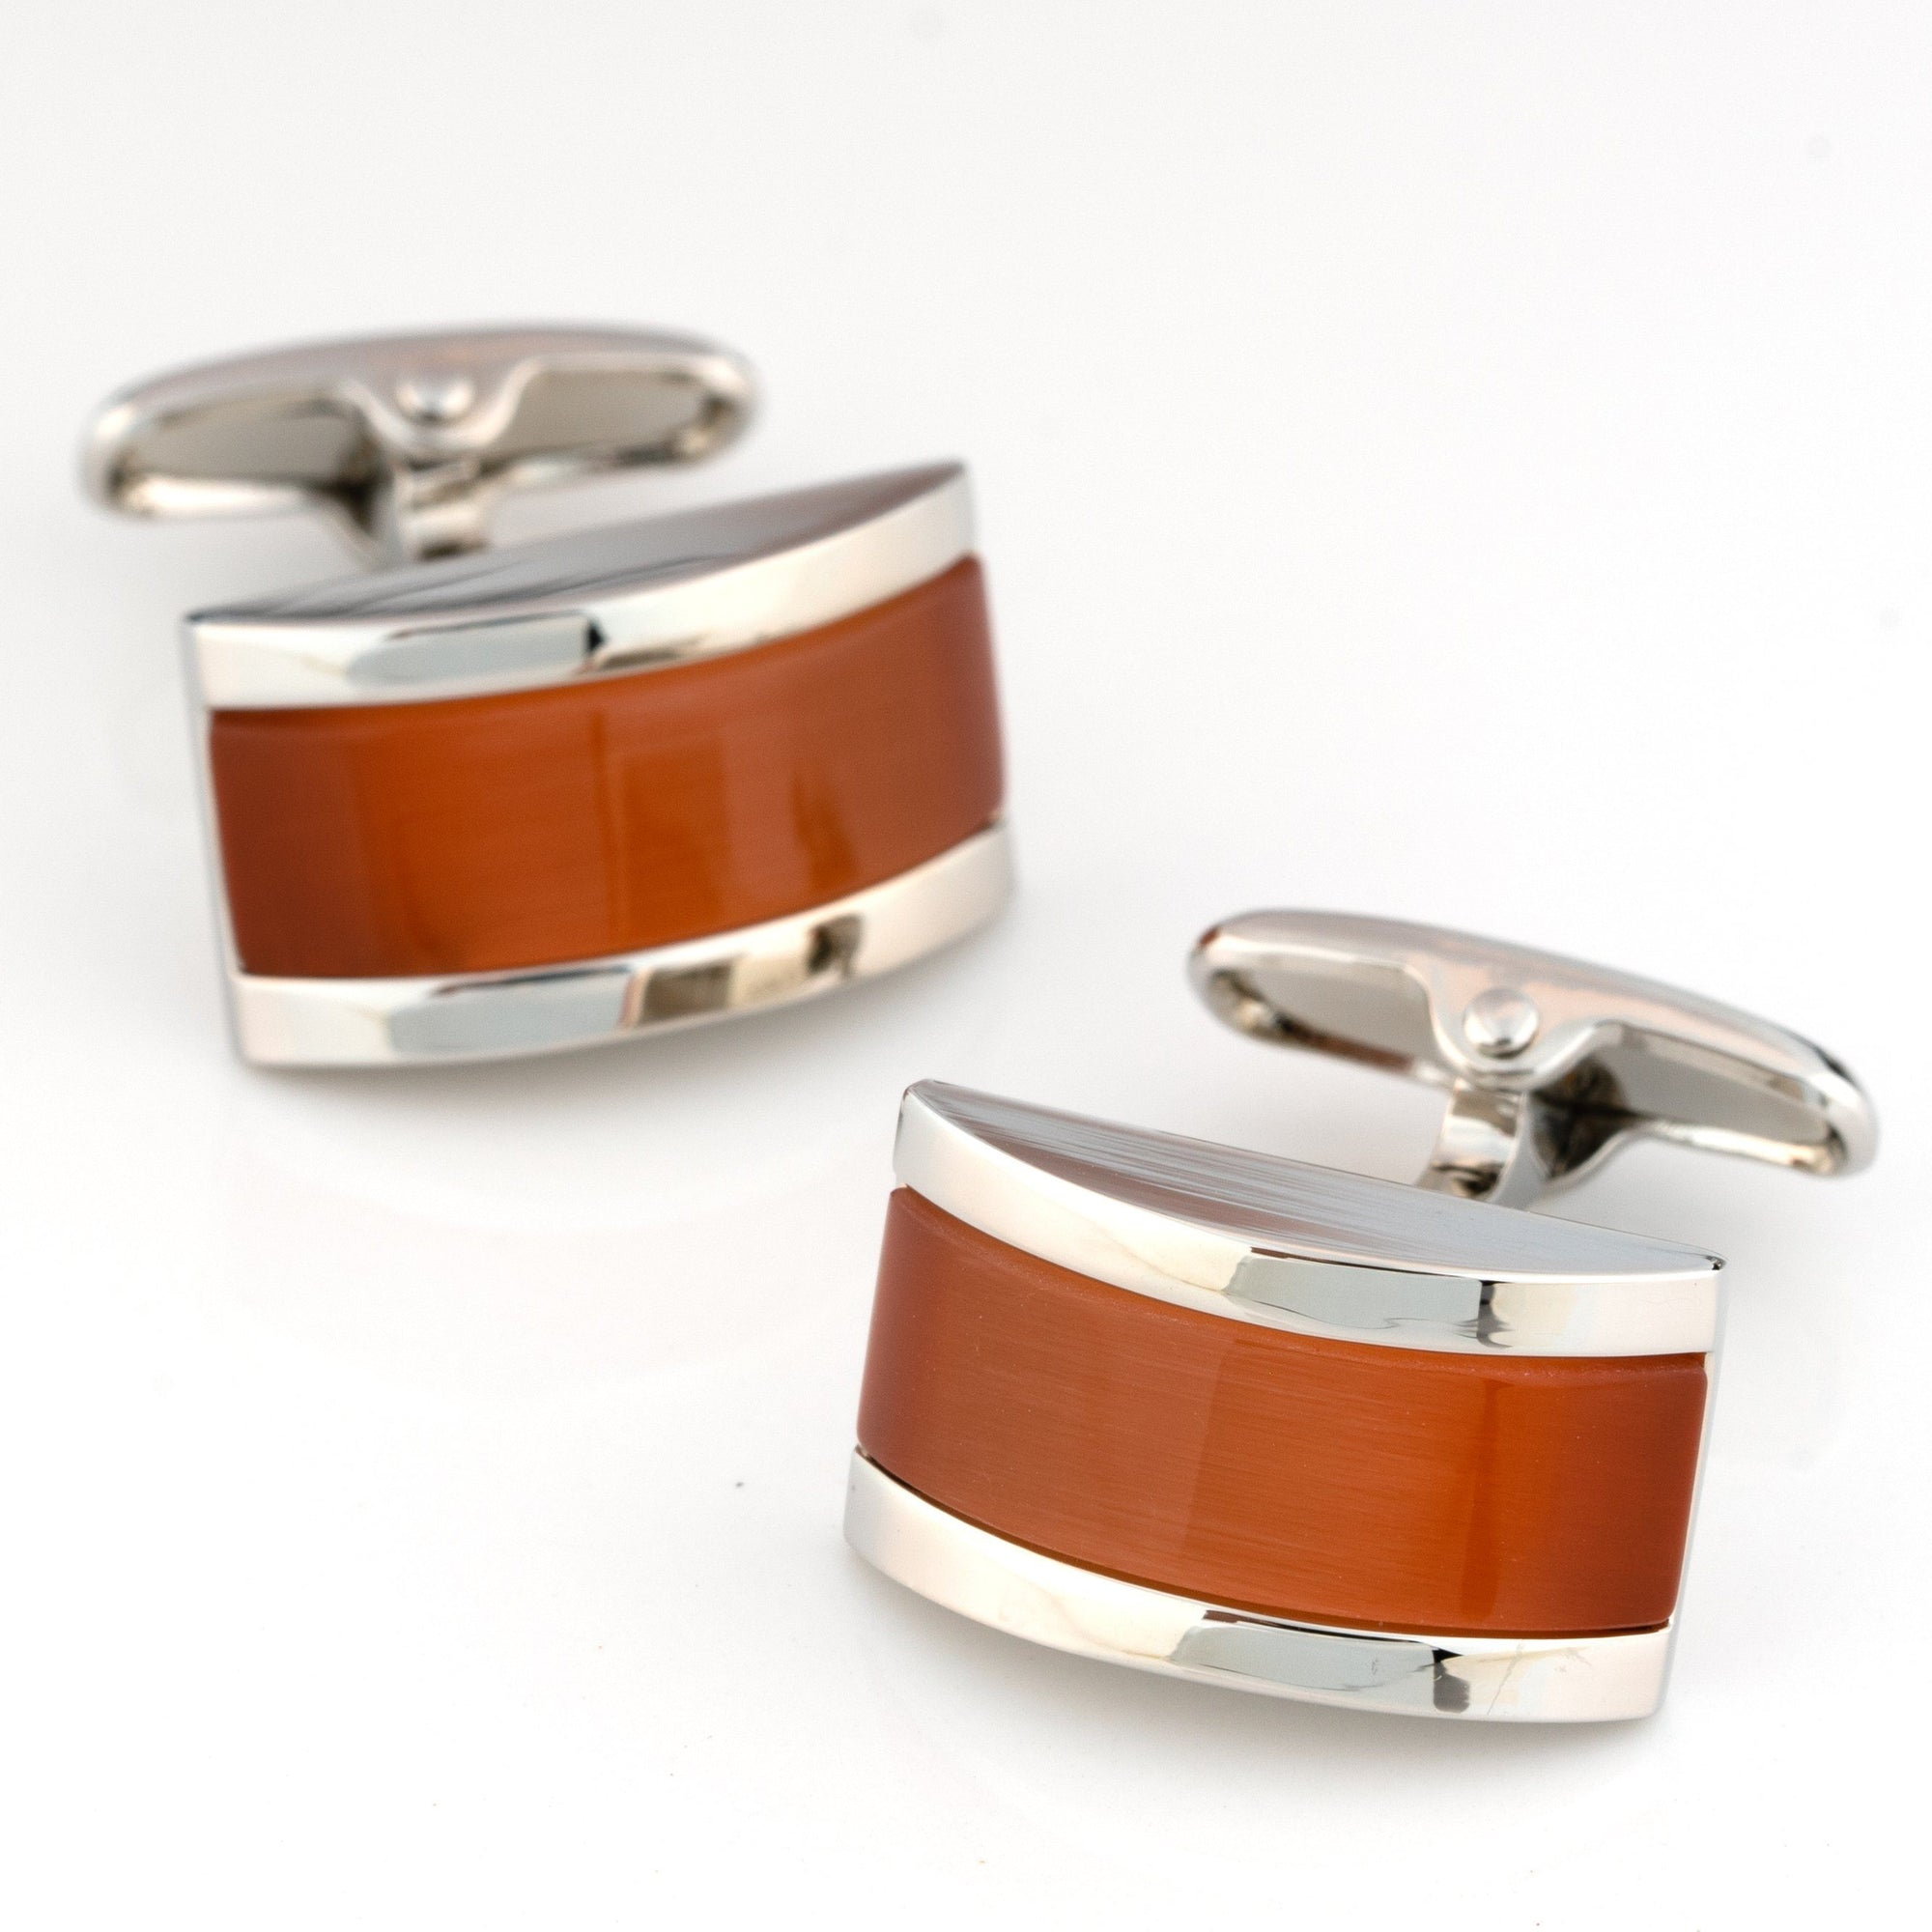 Sunset Orange Cateye Cufflinks Classic & Modern Cufflinks Clinks Australia